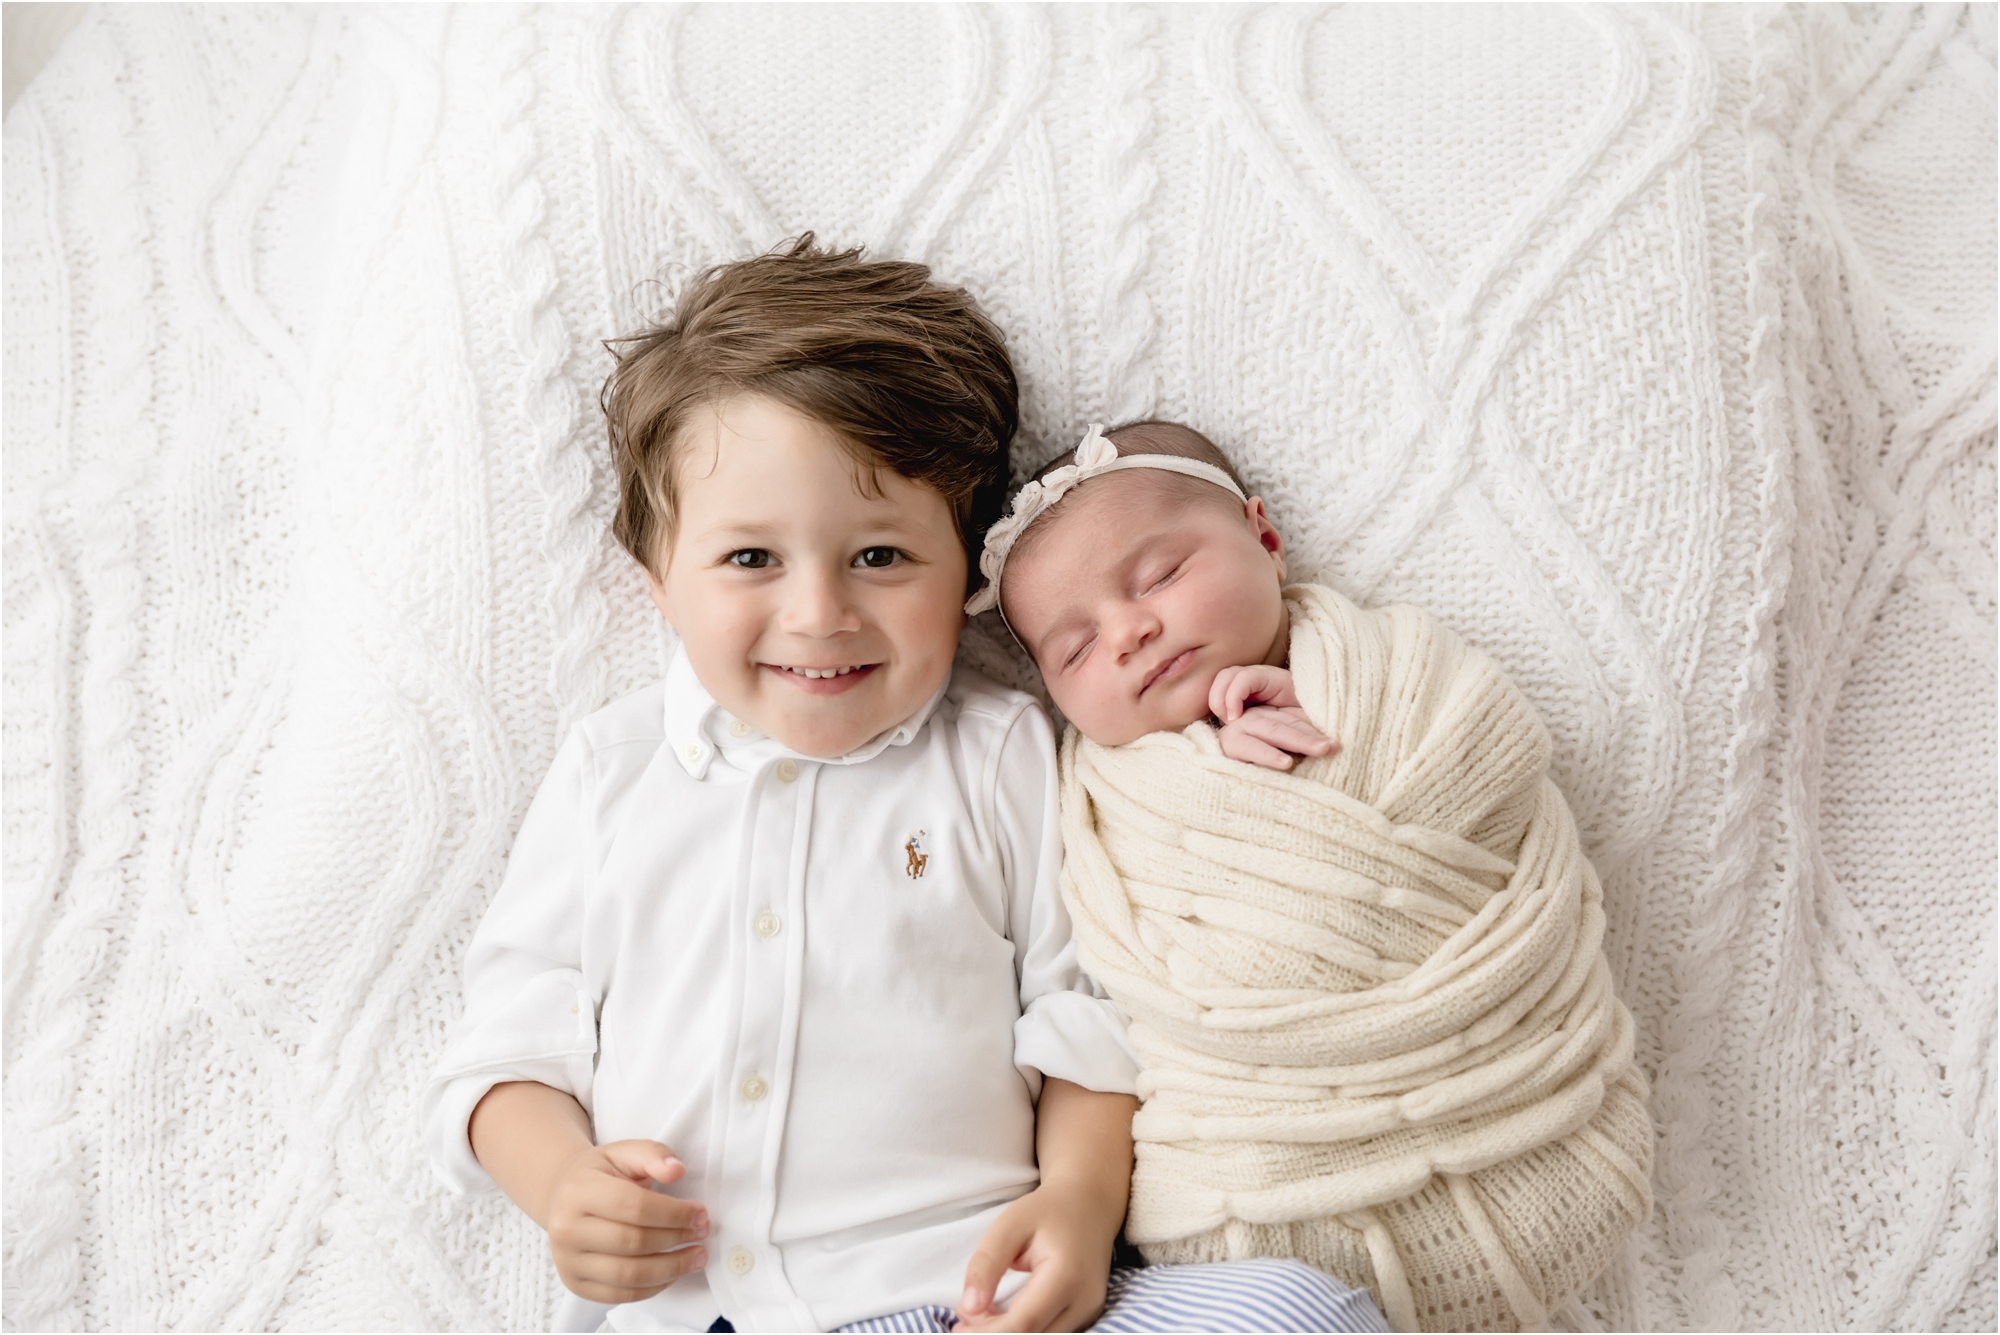 Brother smiling at camera next to newborn baby sister. Photo by Lifetime of Clicks Photography.